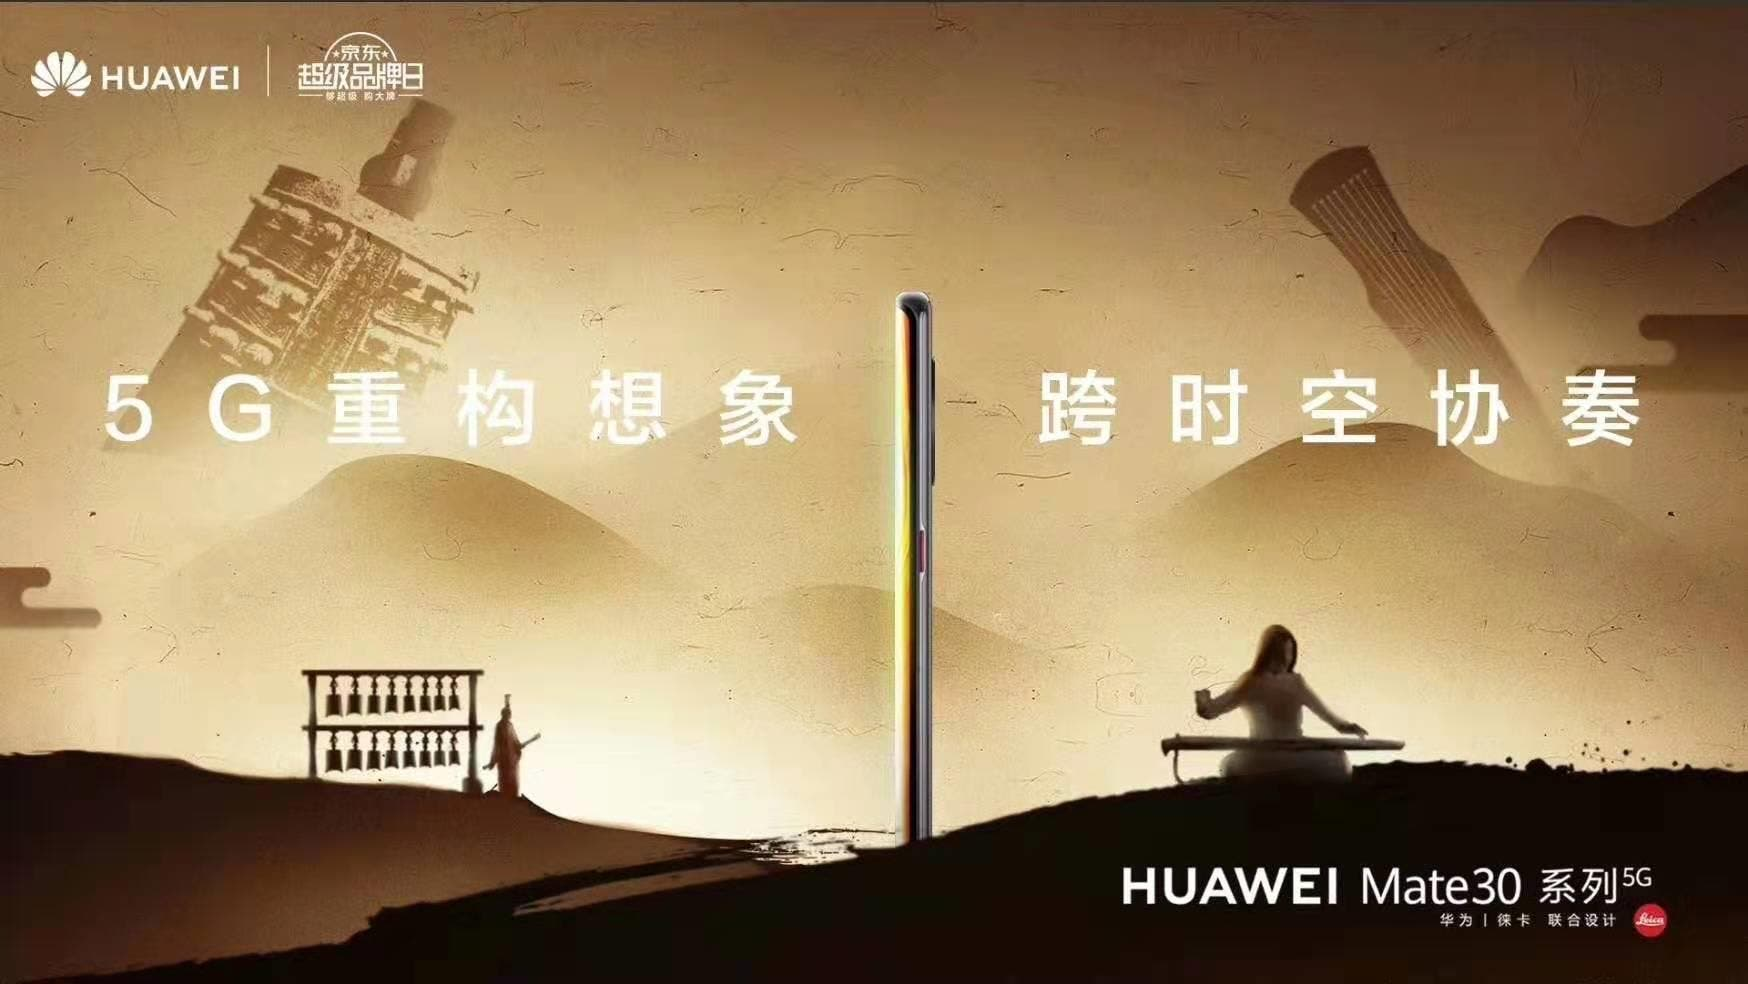 Huawei launches its much-awaited folding phone